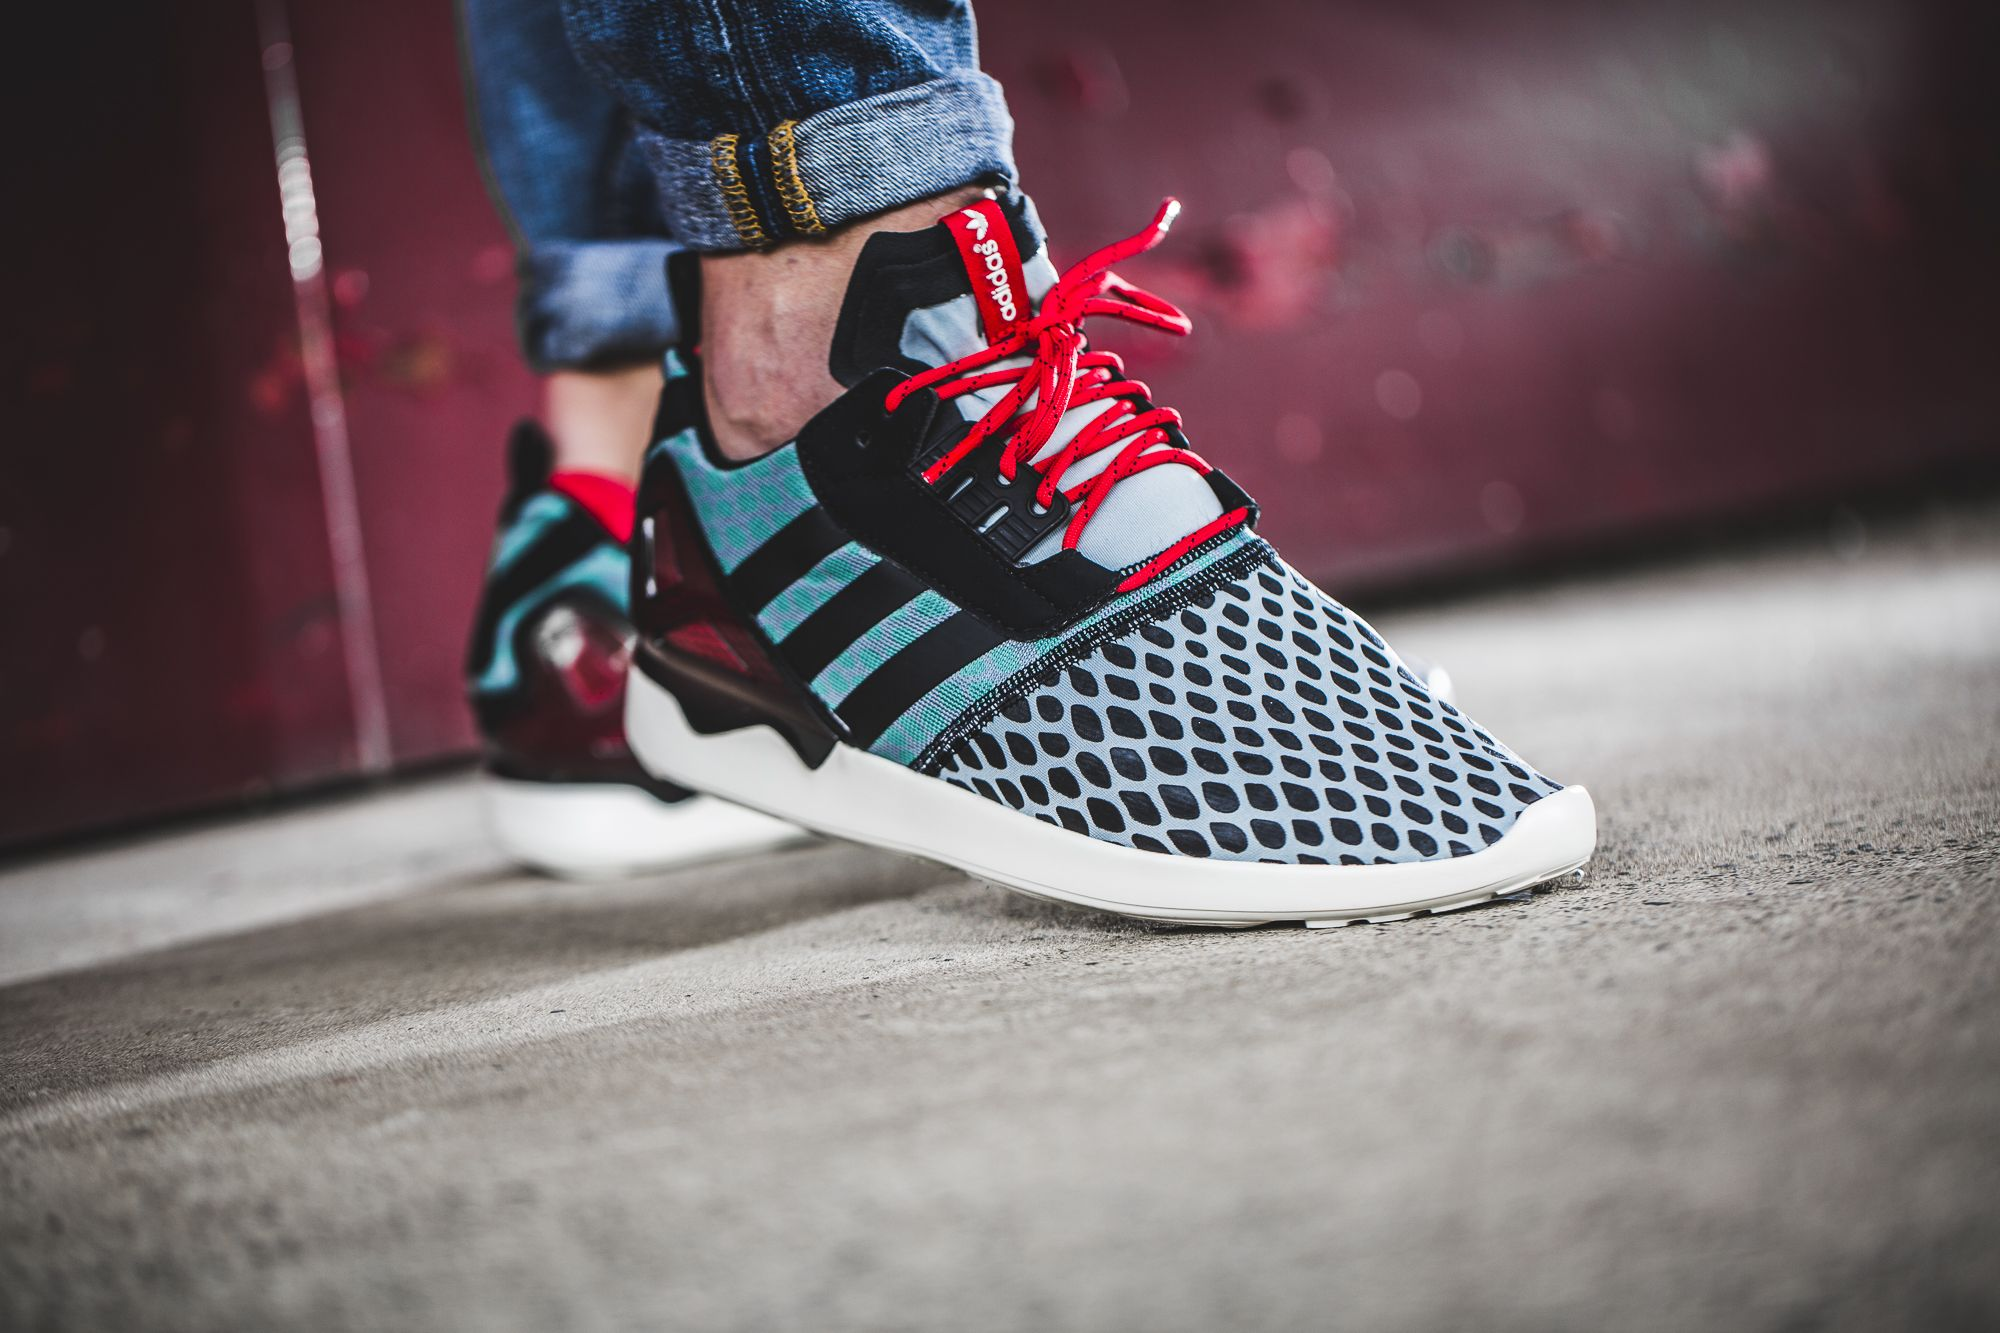 The adidas Originals ZX 8000 Boost is available at our shop now! EU 41 1 3  - 46 2 3  de841e9e2